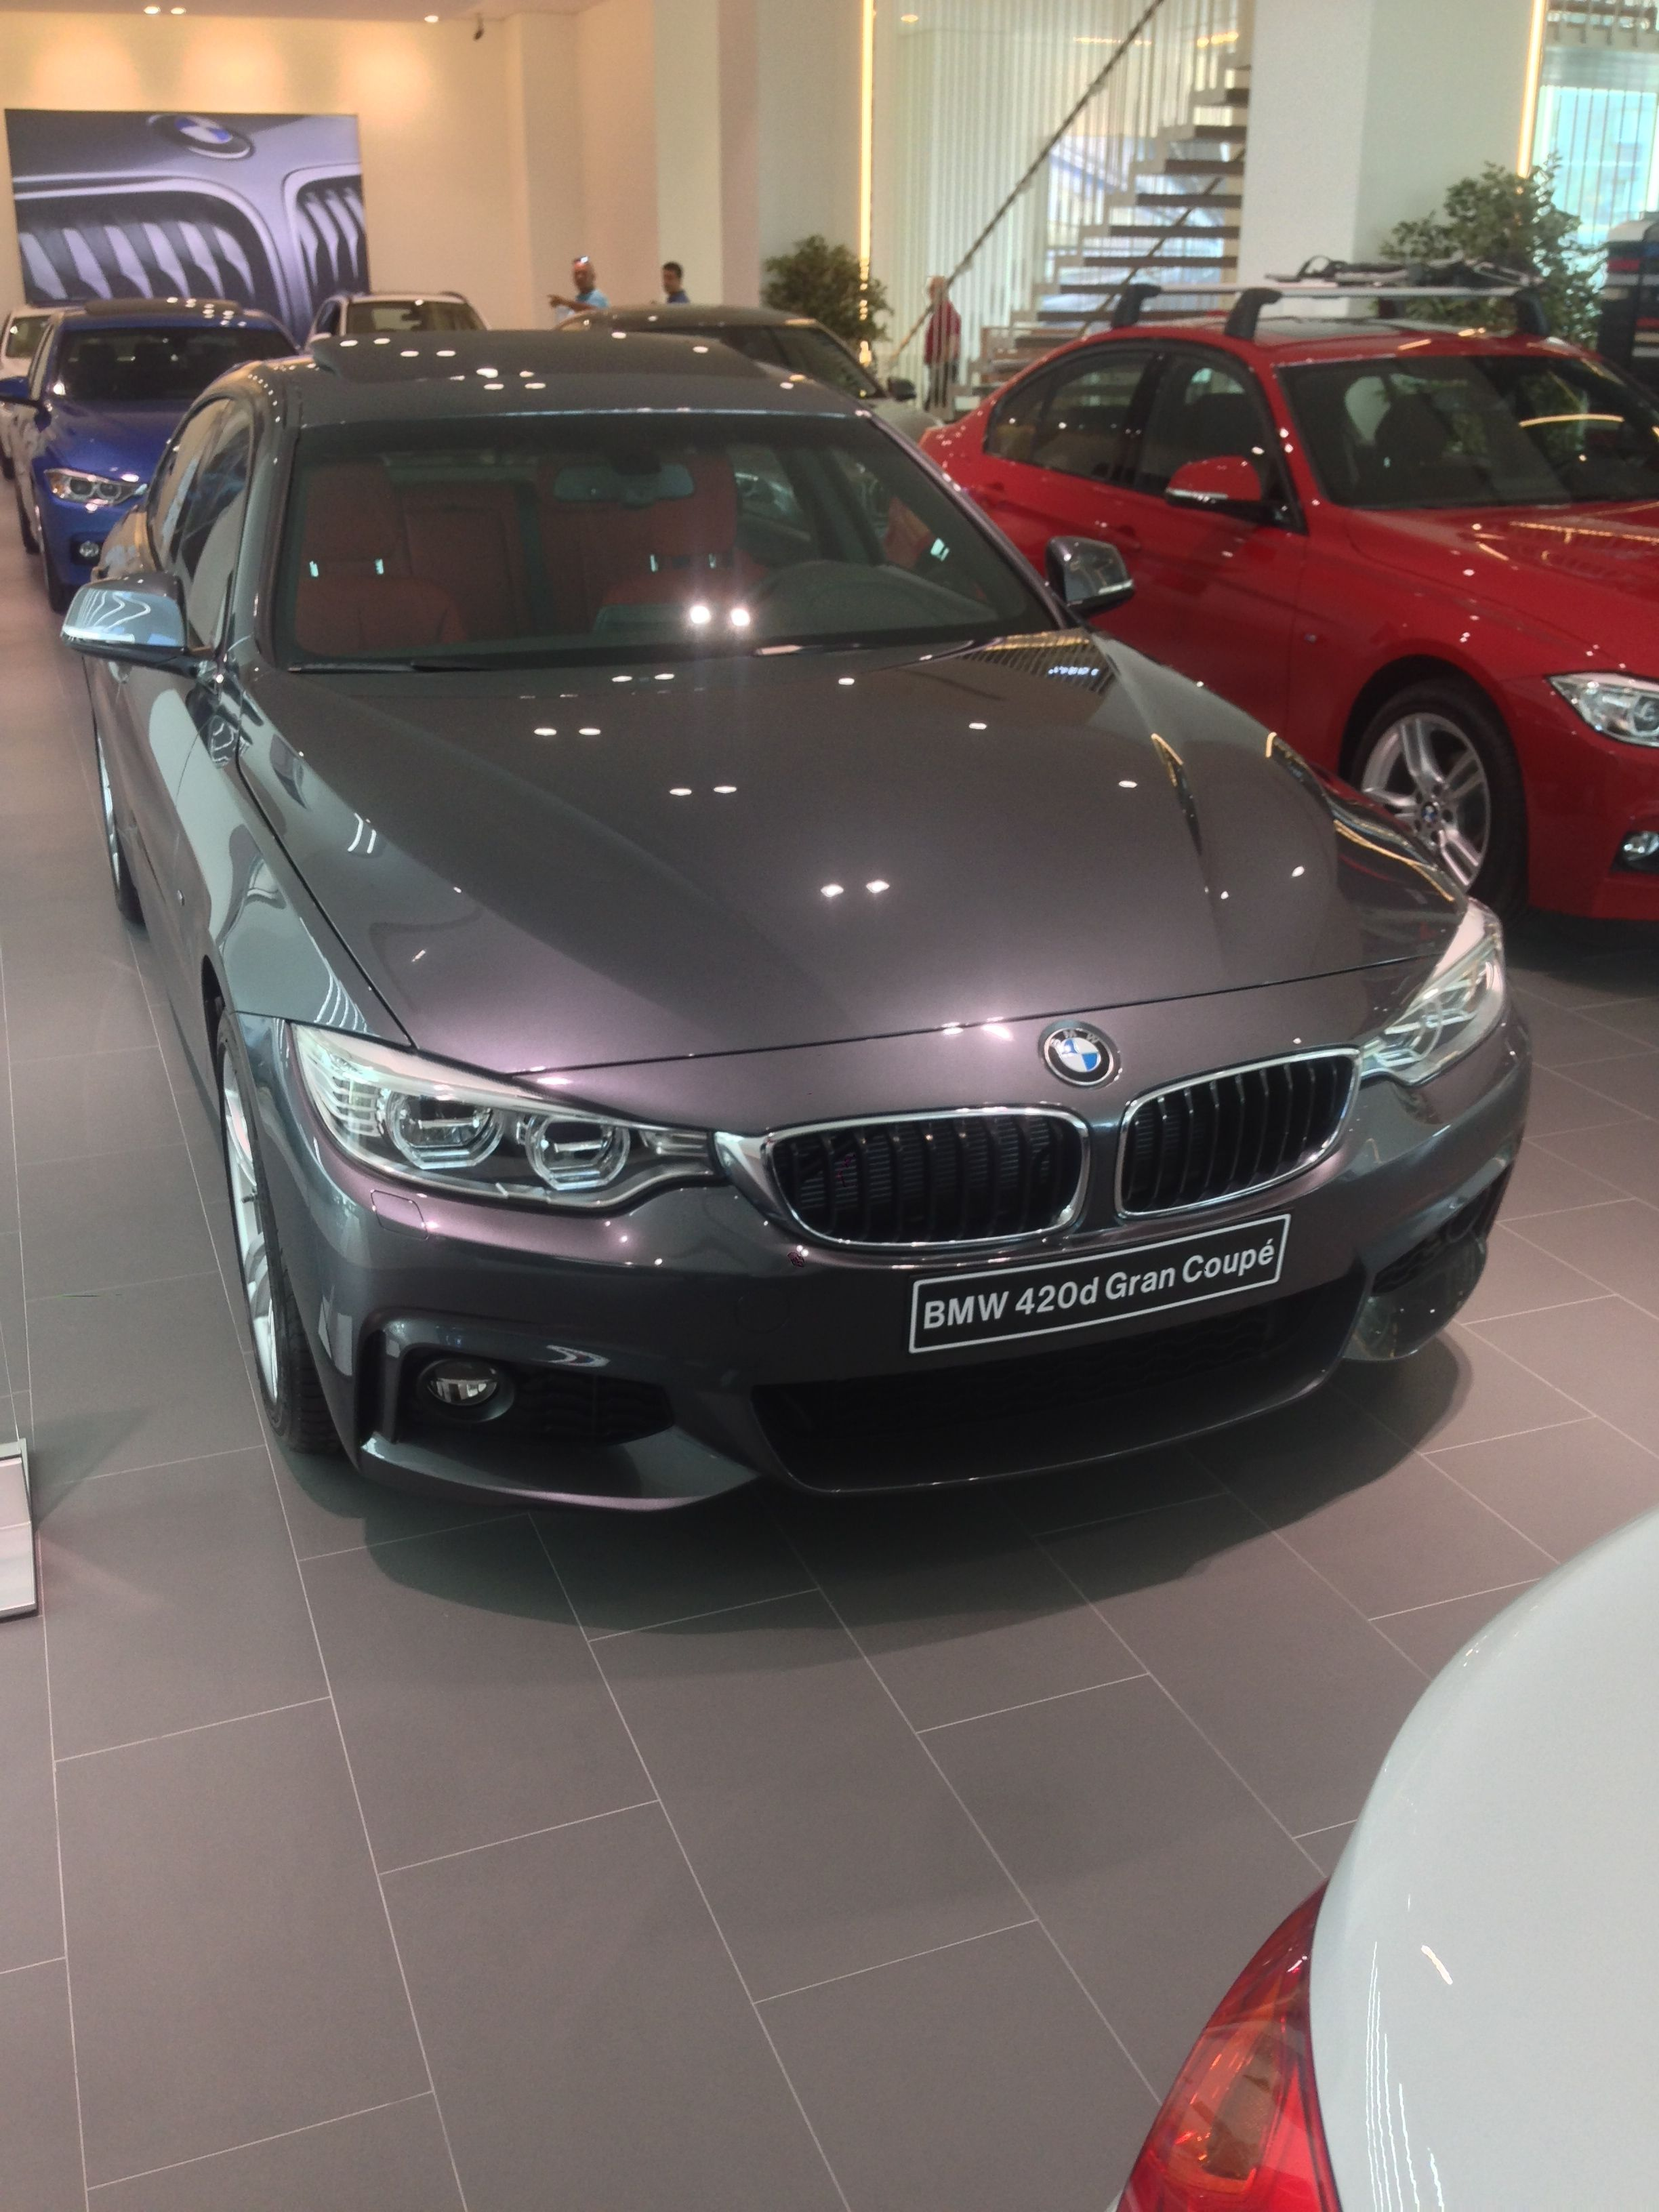 have a new bmw term car m delivered lease auto series month leasing d short brand